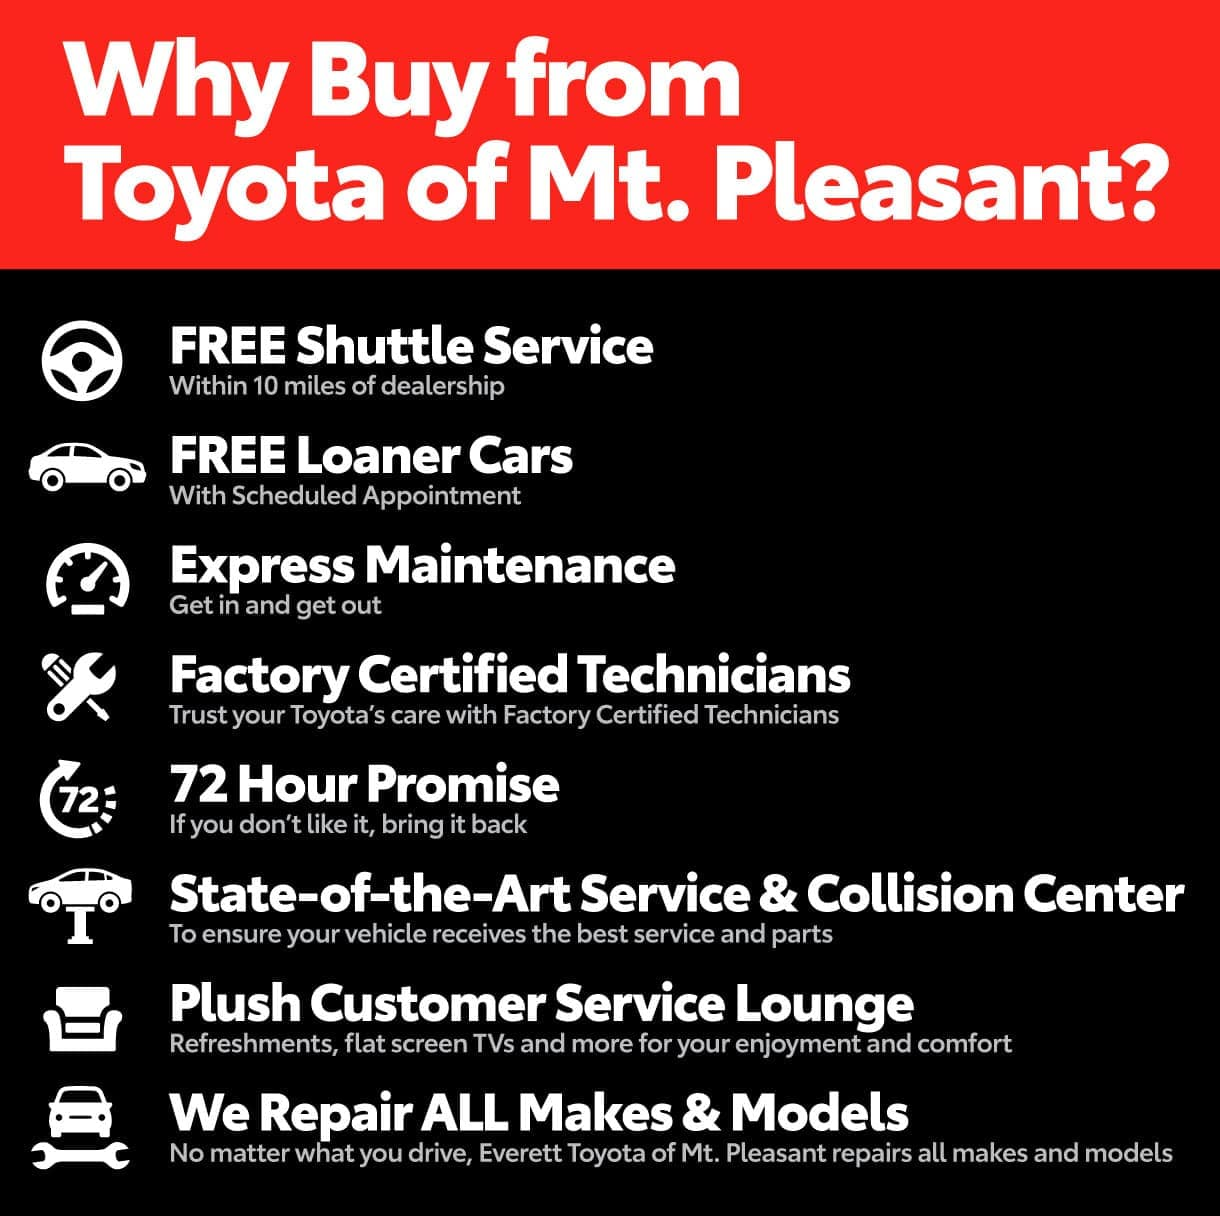 Why Buy from Toyota of Mt. Pleasant? Free Shuttle Service, Free Loaner Cars, Express Maintenance, Factory Certified Technicians, 72 Hour Promise, and more!